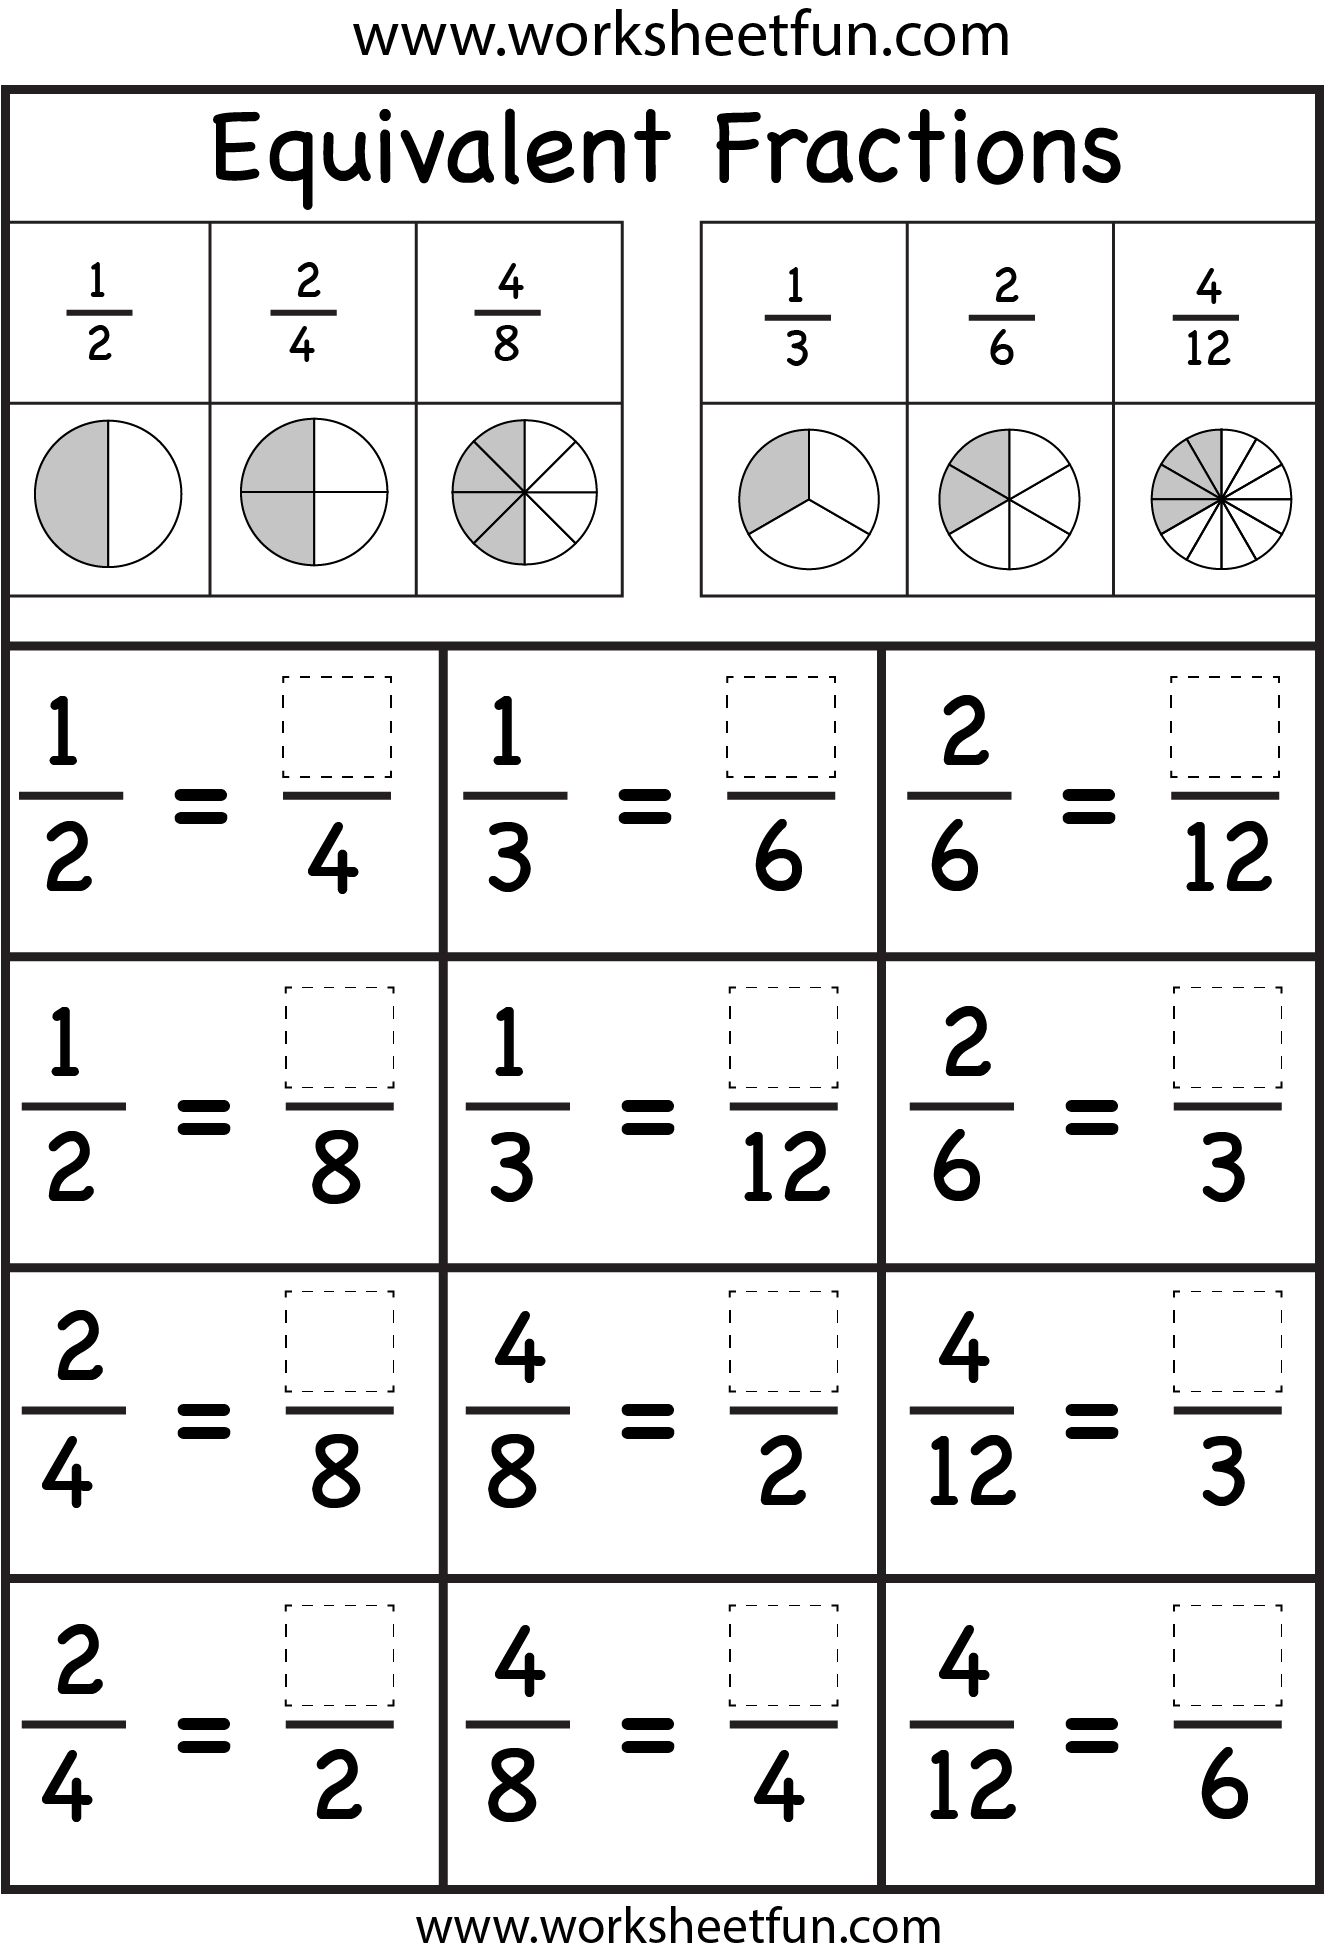 Equivalent Fractions Worksheet Free Printable Worksheets